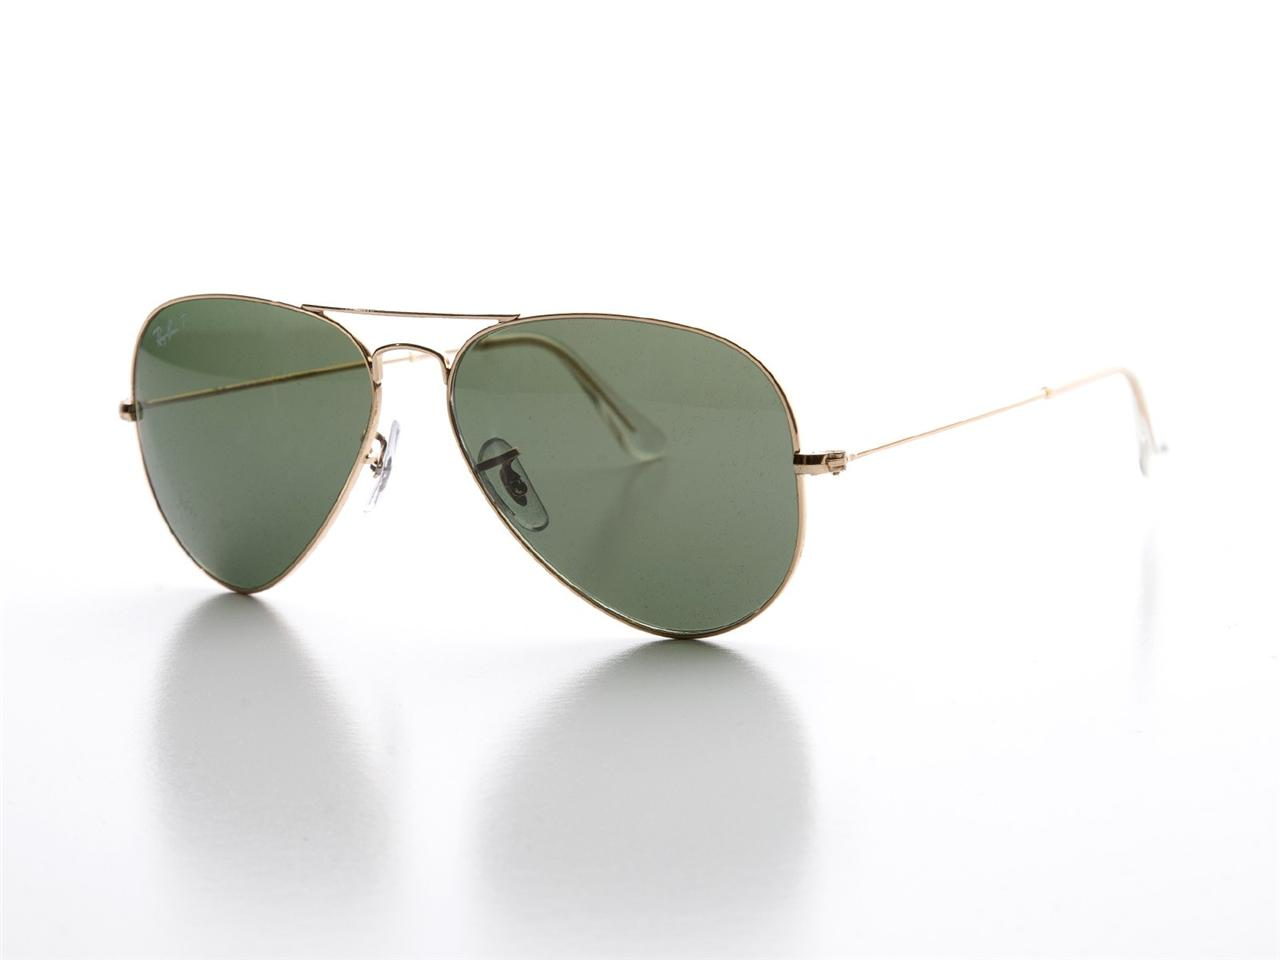 RAY BAN AVIATOR SUNGLASSES RB 3025 001 58 58MM GOLD WHITE ...